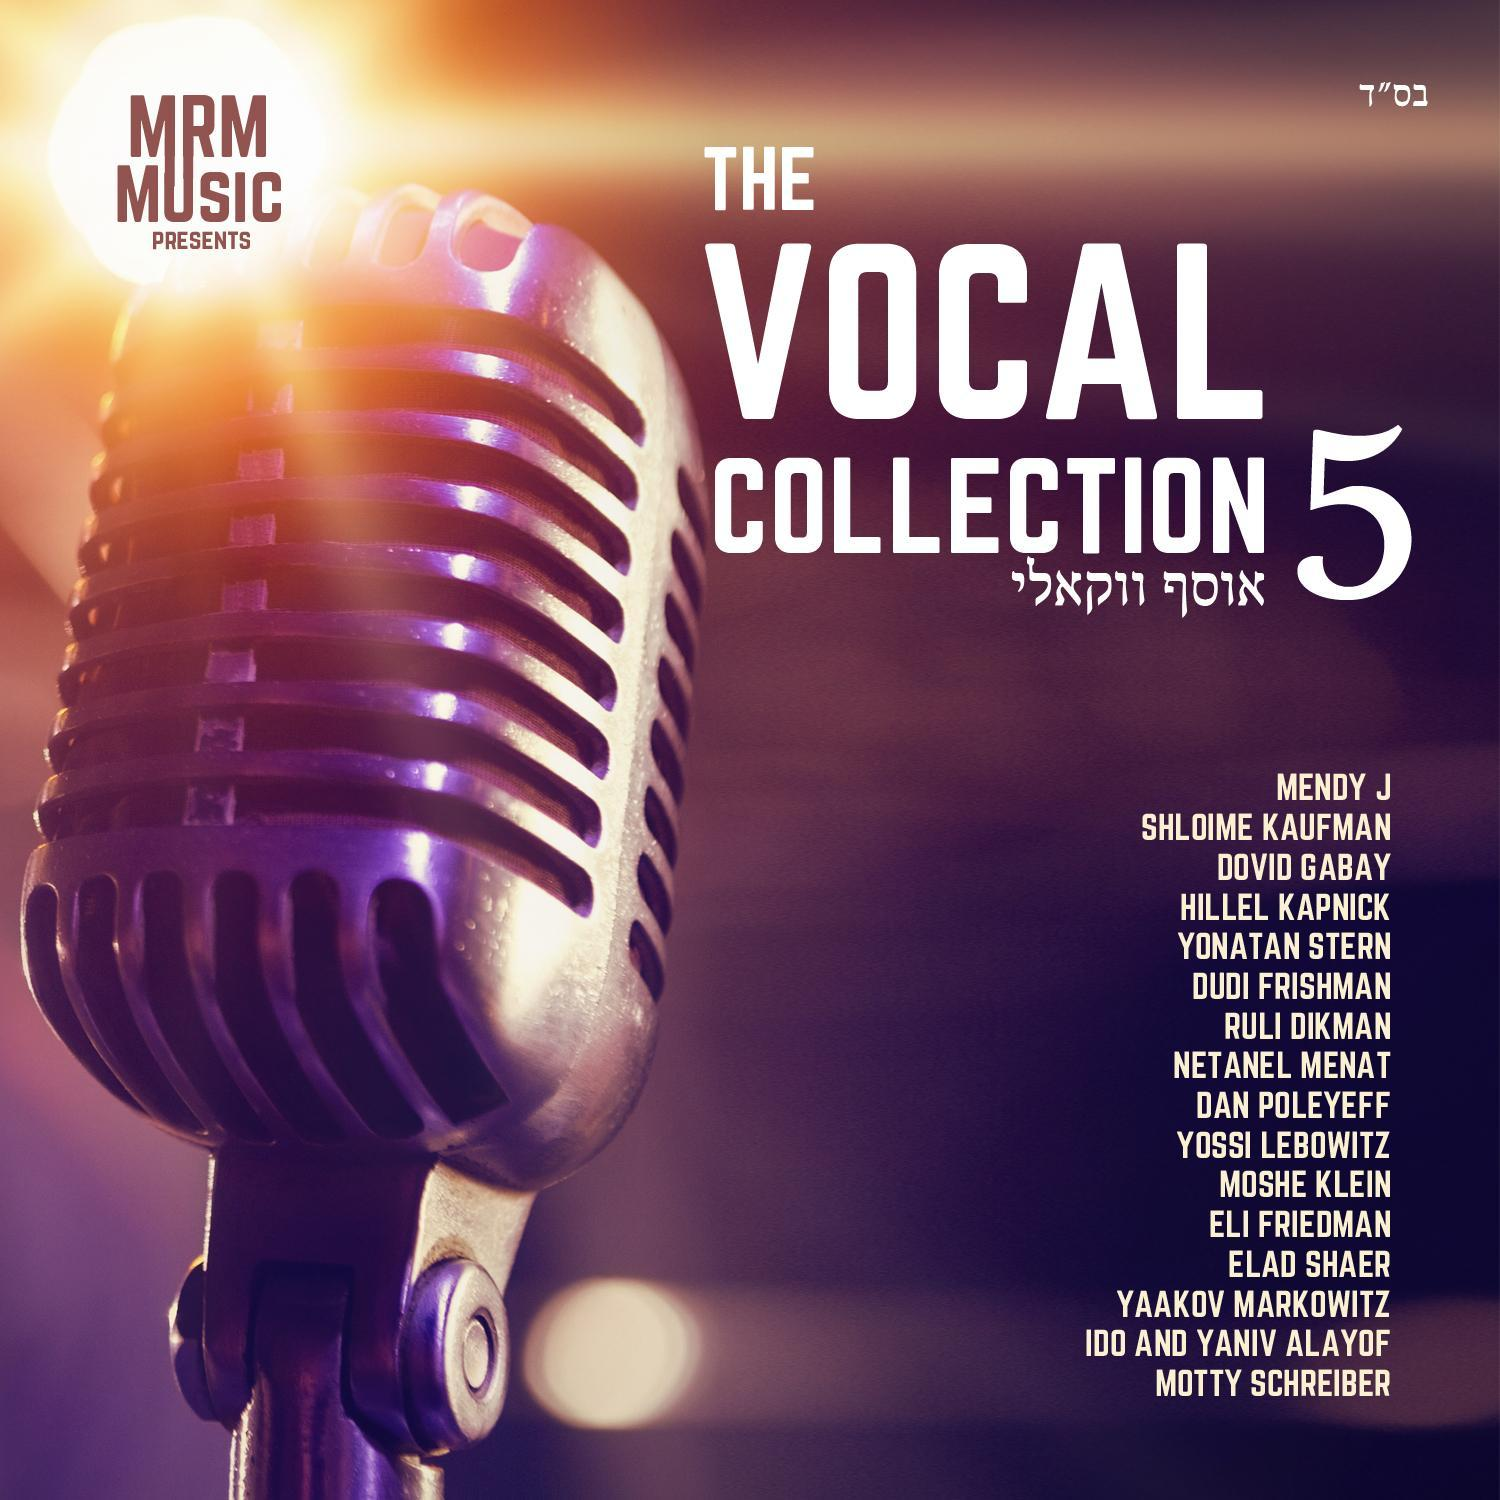 MRM - The Vocal Collection 5